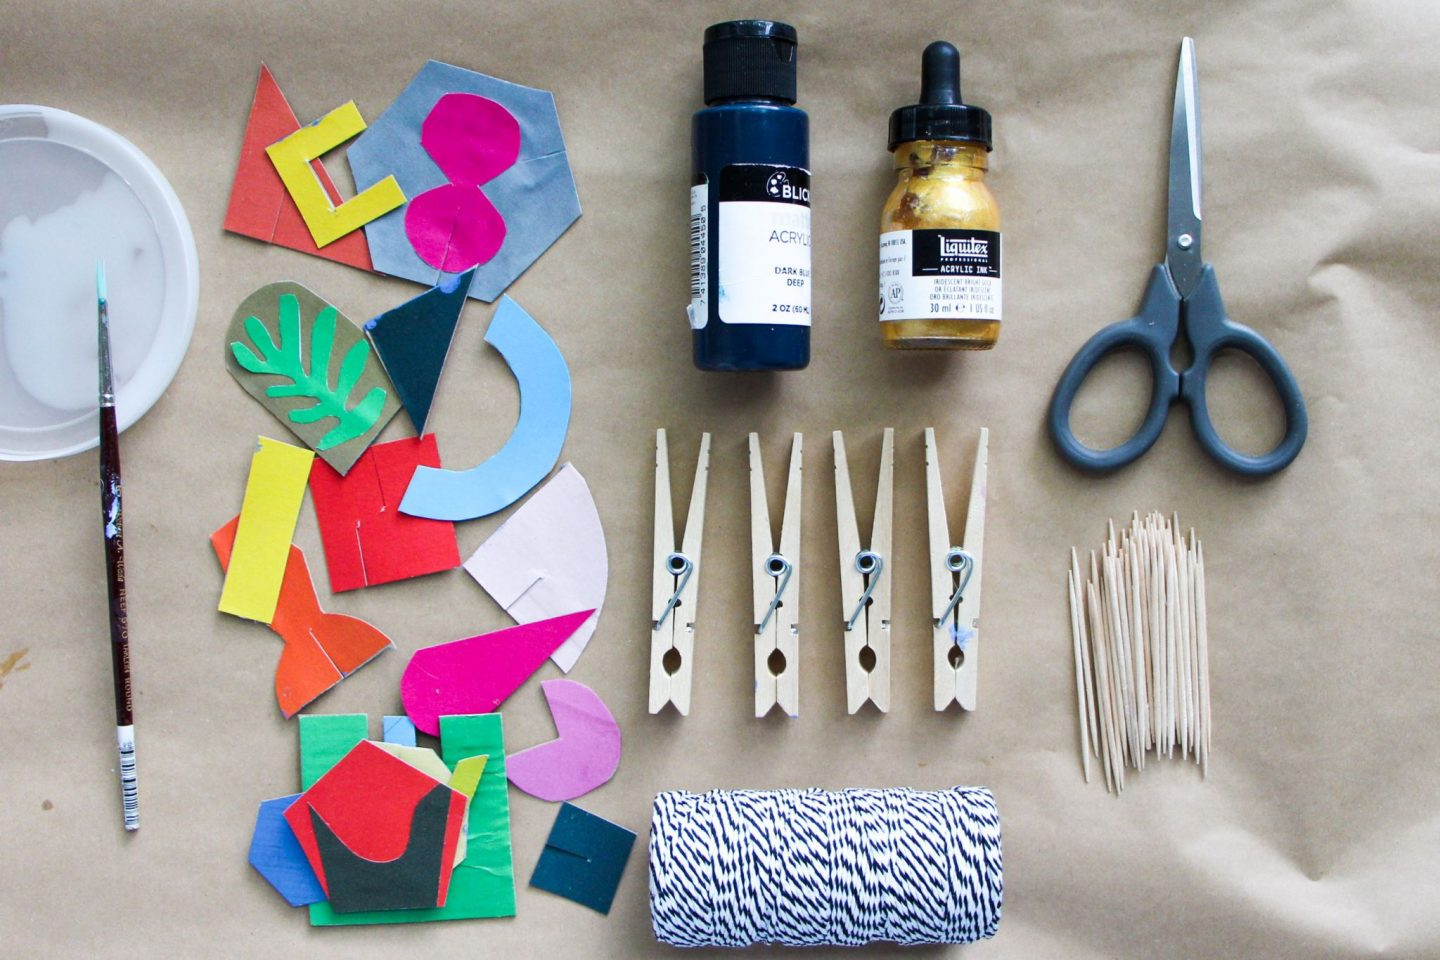 Tools and materials that can be used to make a cardboard sculpture out of the Play Shapes!